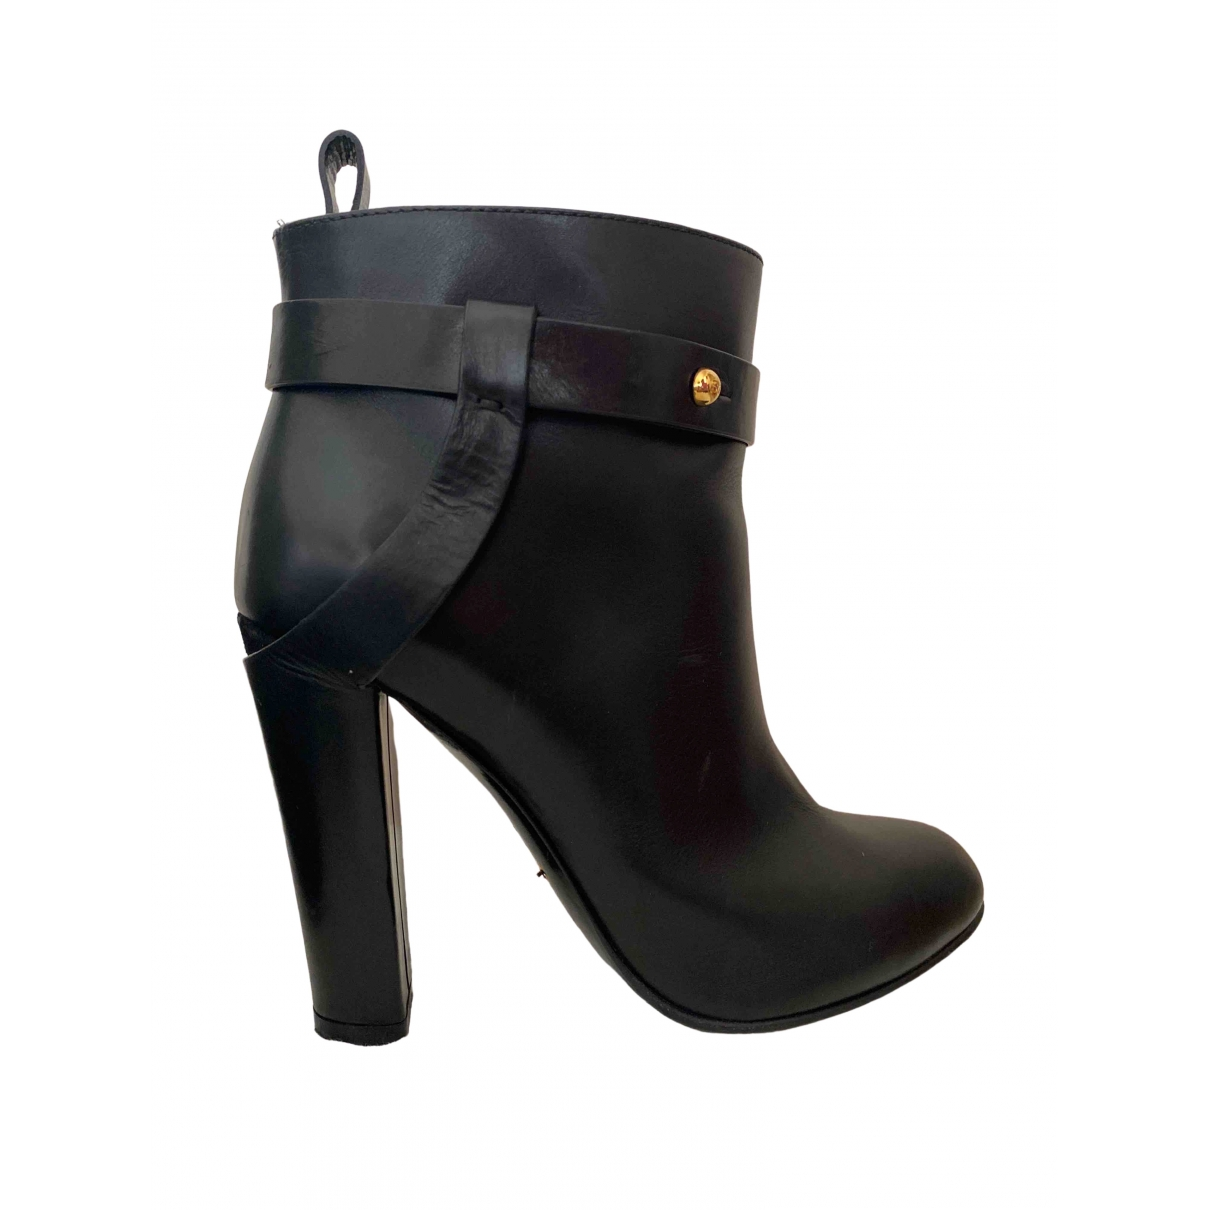 Sergio Rossi \N Black Leather Ankle boots for Women 37.5 EU